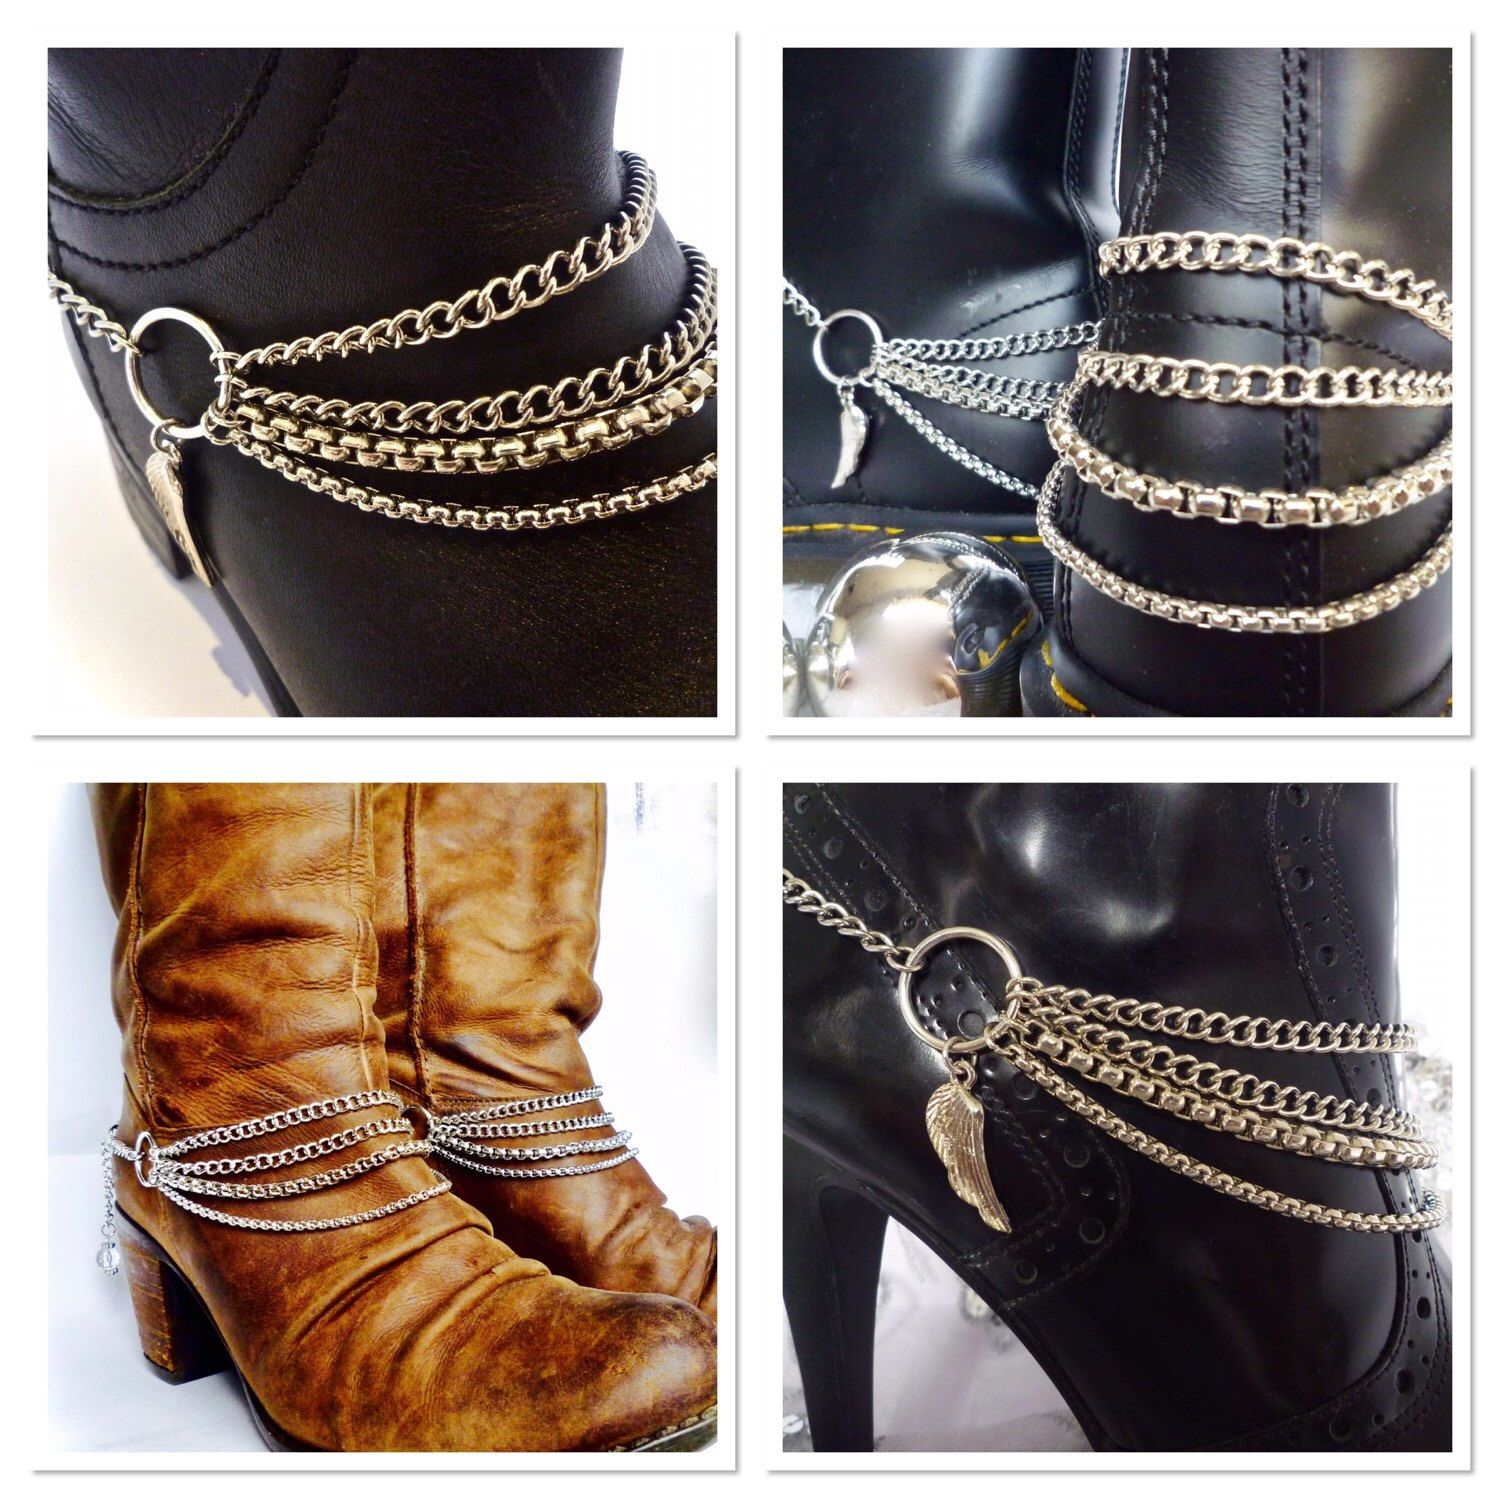 Best Selling Wings Of Desire Boot Chains Could This Be